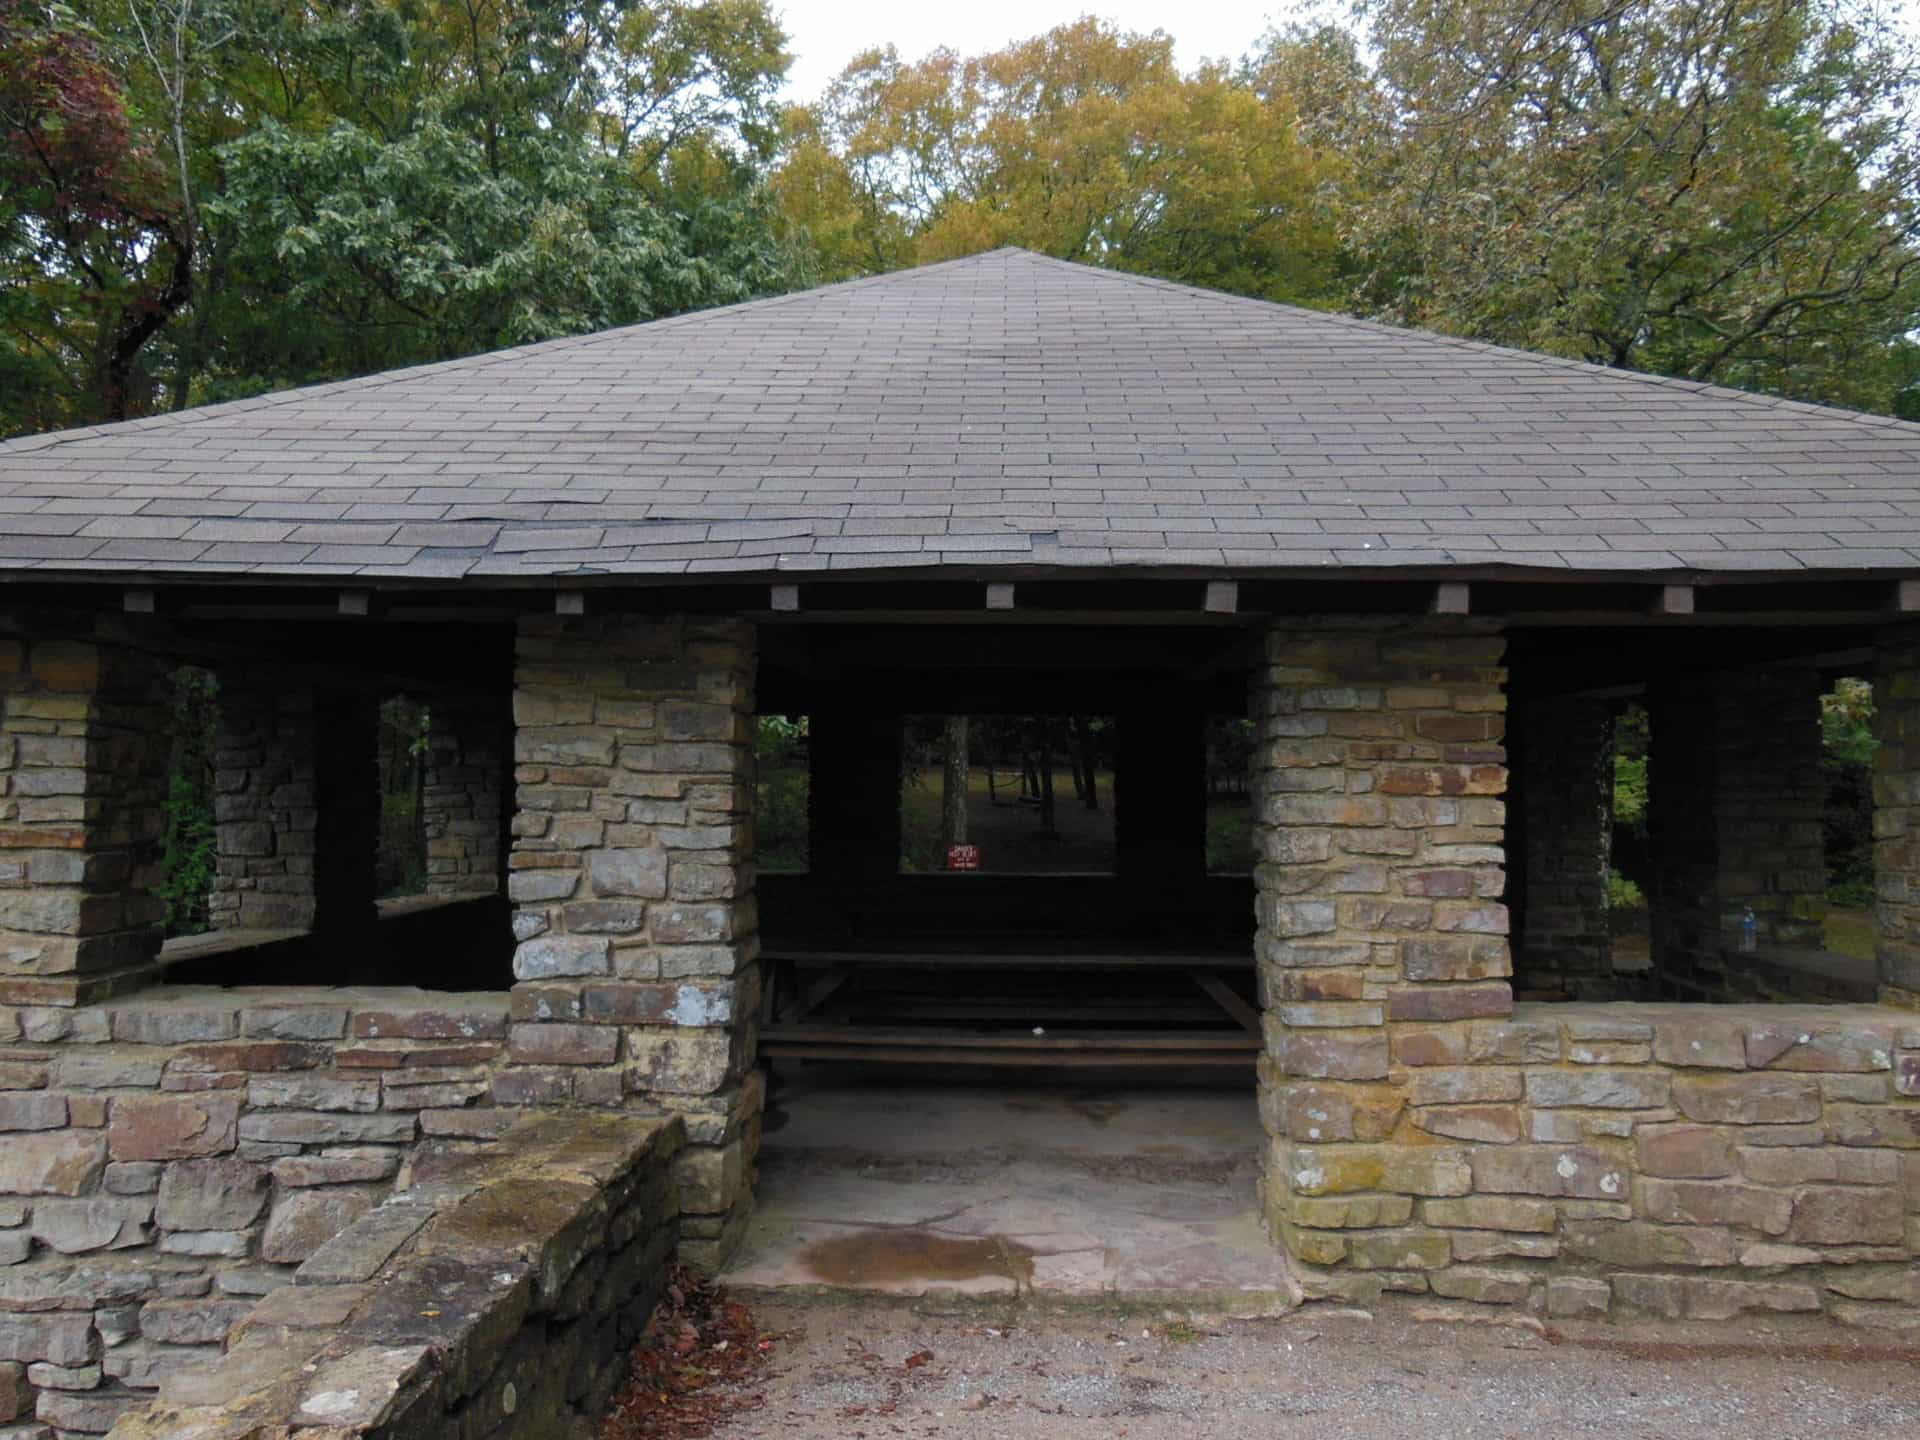 Monte Sano State Park - Stone Shelter